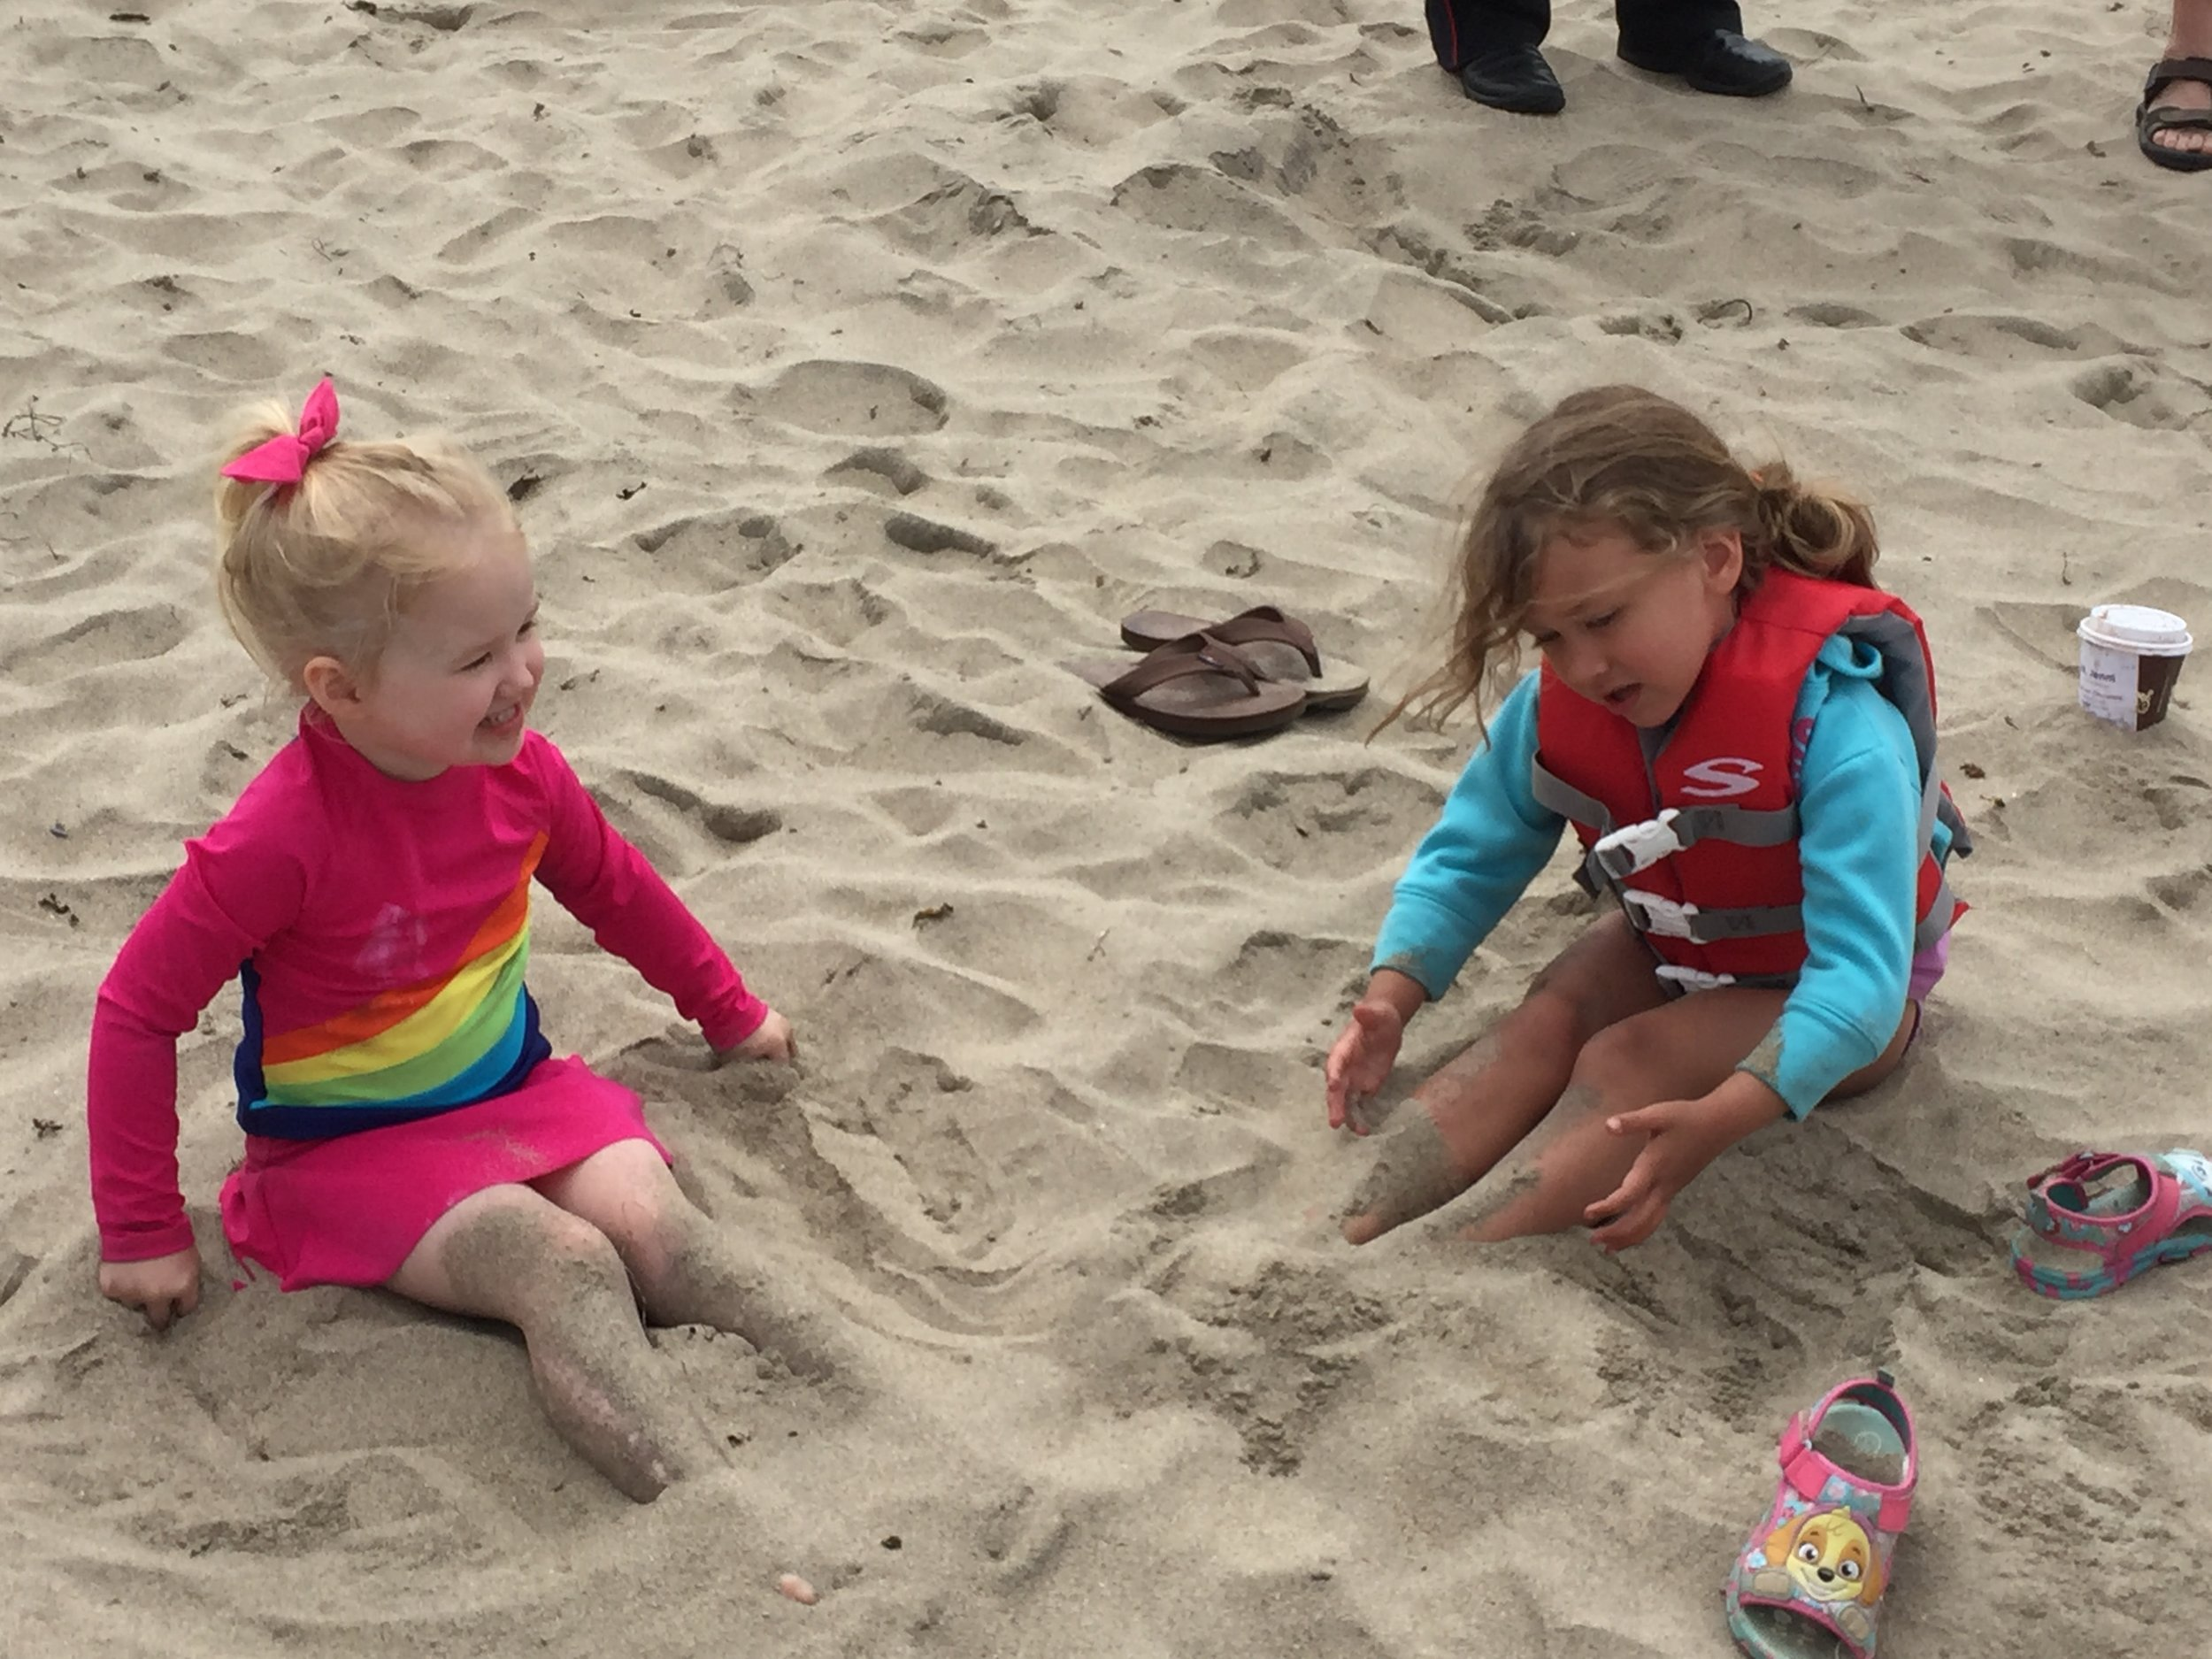 We got to go to Santa Cruz with Liz, Katherine and Jenni Sanders! It was soo much fun! A little cold in the water but we had fun digging in the sand too. Maia even made a nest for a piece of driftwood that looked just like Captain Cook from Mr. Popper's Penguins!